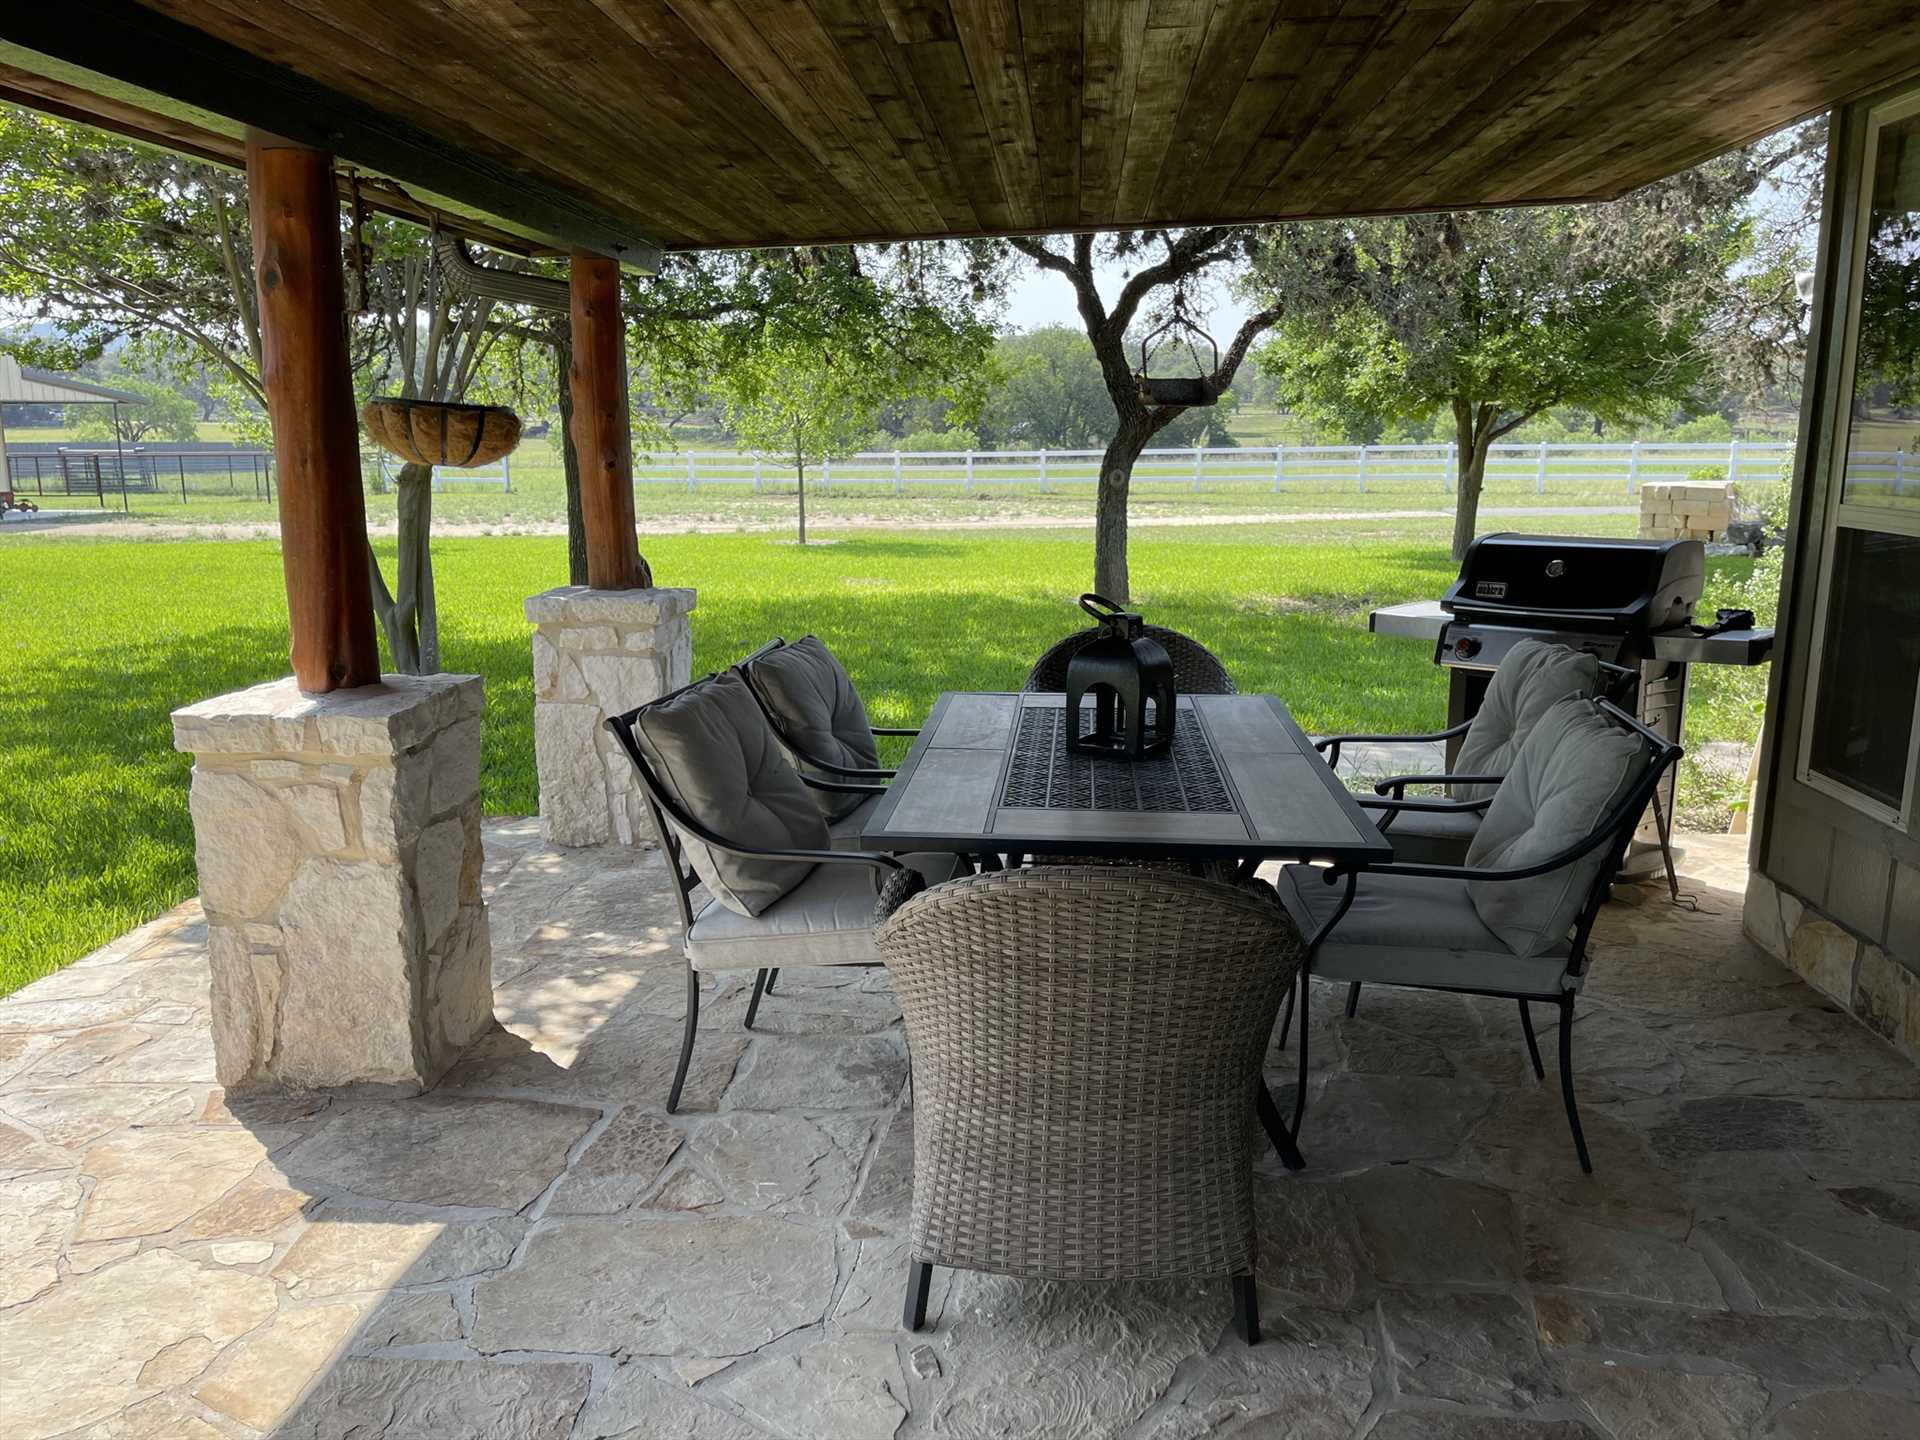 The comfortable and stylish setup on the shaded patio is like having a second living room!